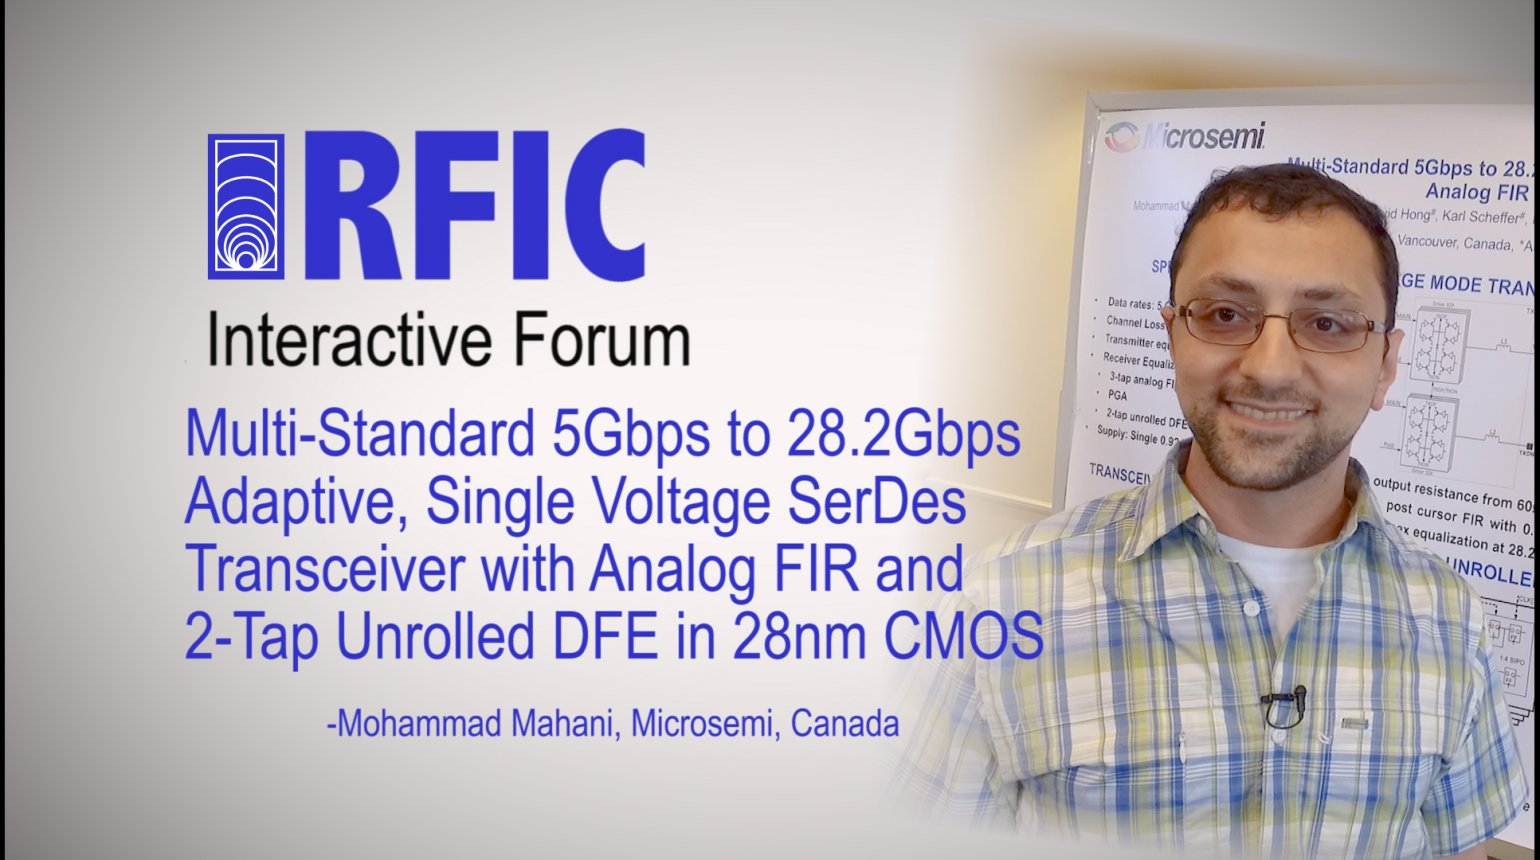 Multi-Standard 5Gbps to 28.2Gbps Adaptive, Single Voltage SerDes Transceiver with Analog FIR and 2-Tap Unrolled DFE in 28nm CMOS: RFIC Interactive Forum 2017